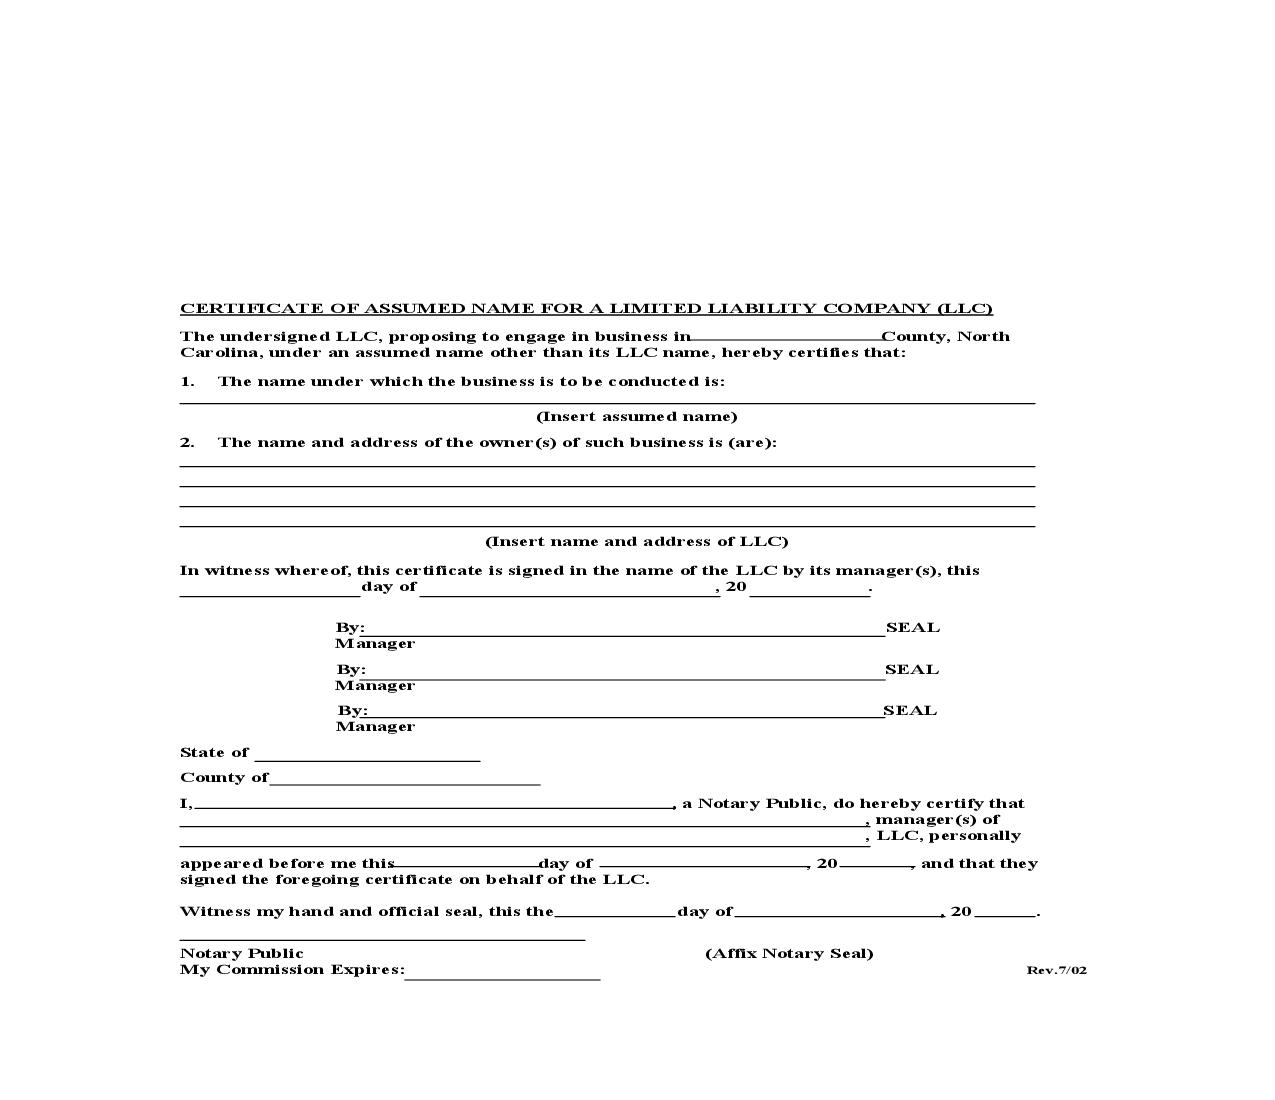 Certificate Of Assumed Name For Limited Liability Company | Pdf Fpdf Doc Docx | North Carolina